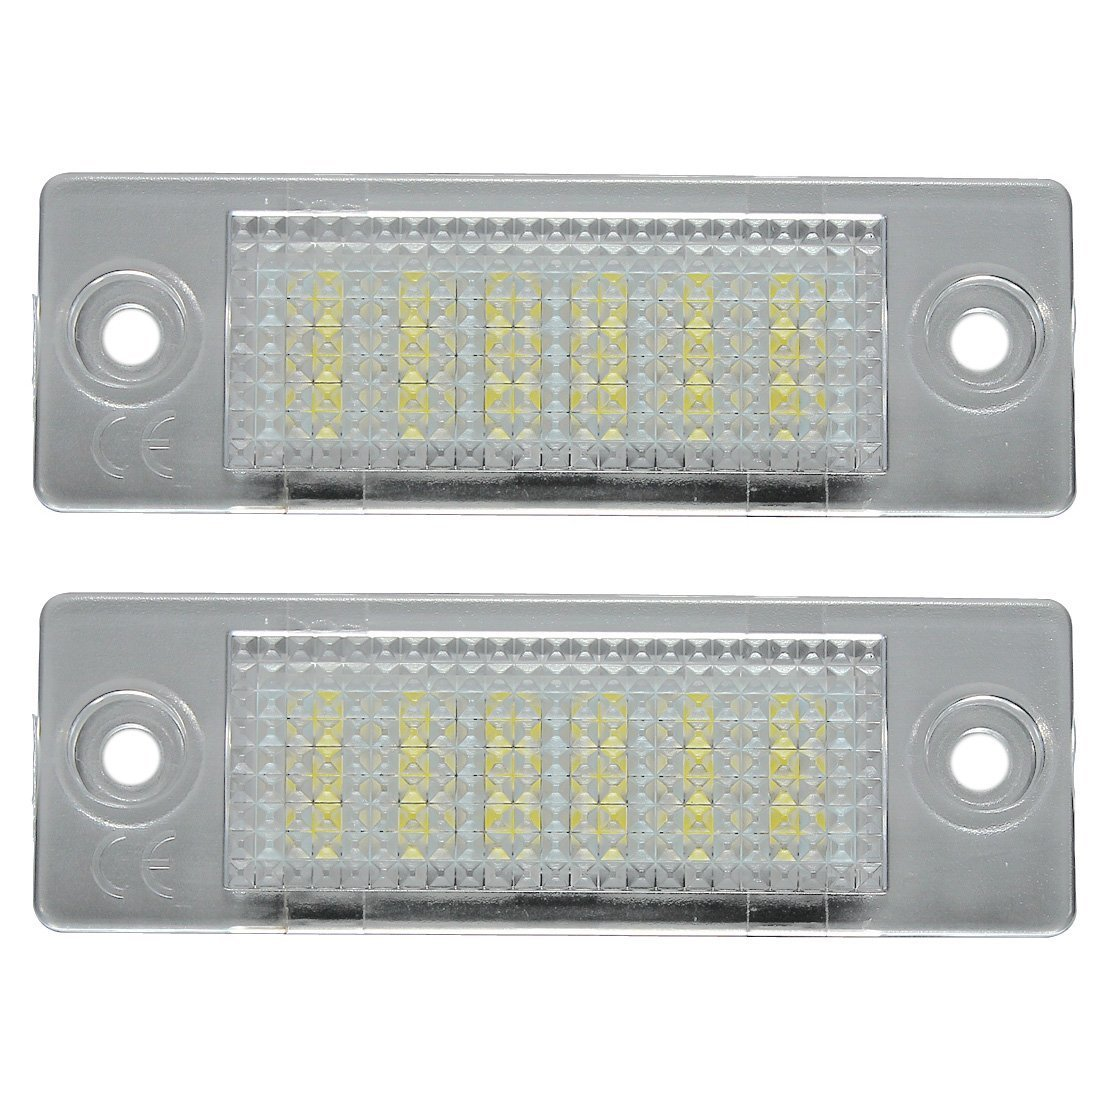 LED Number Plate Light - SODIAL(R) LED License Number Plate Light Lamp 060689